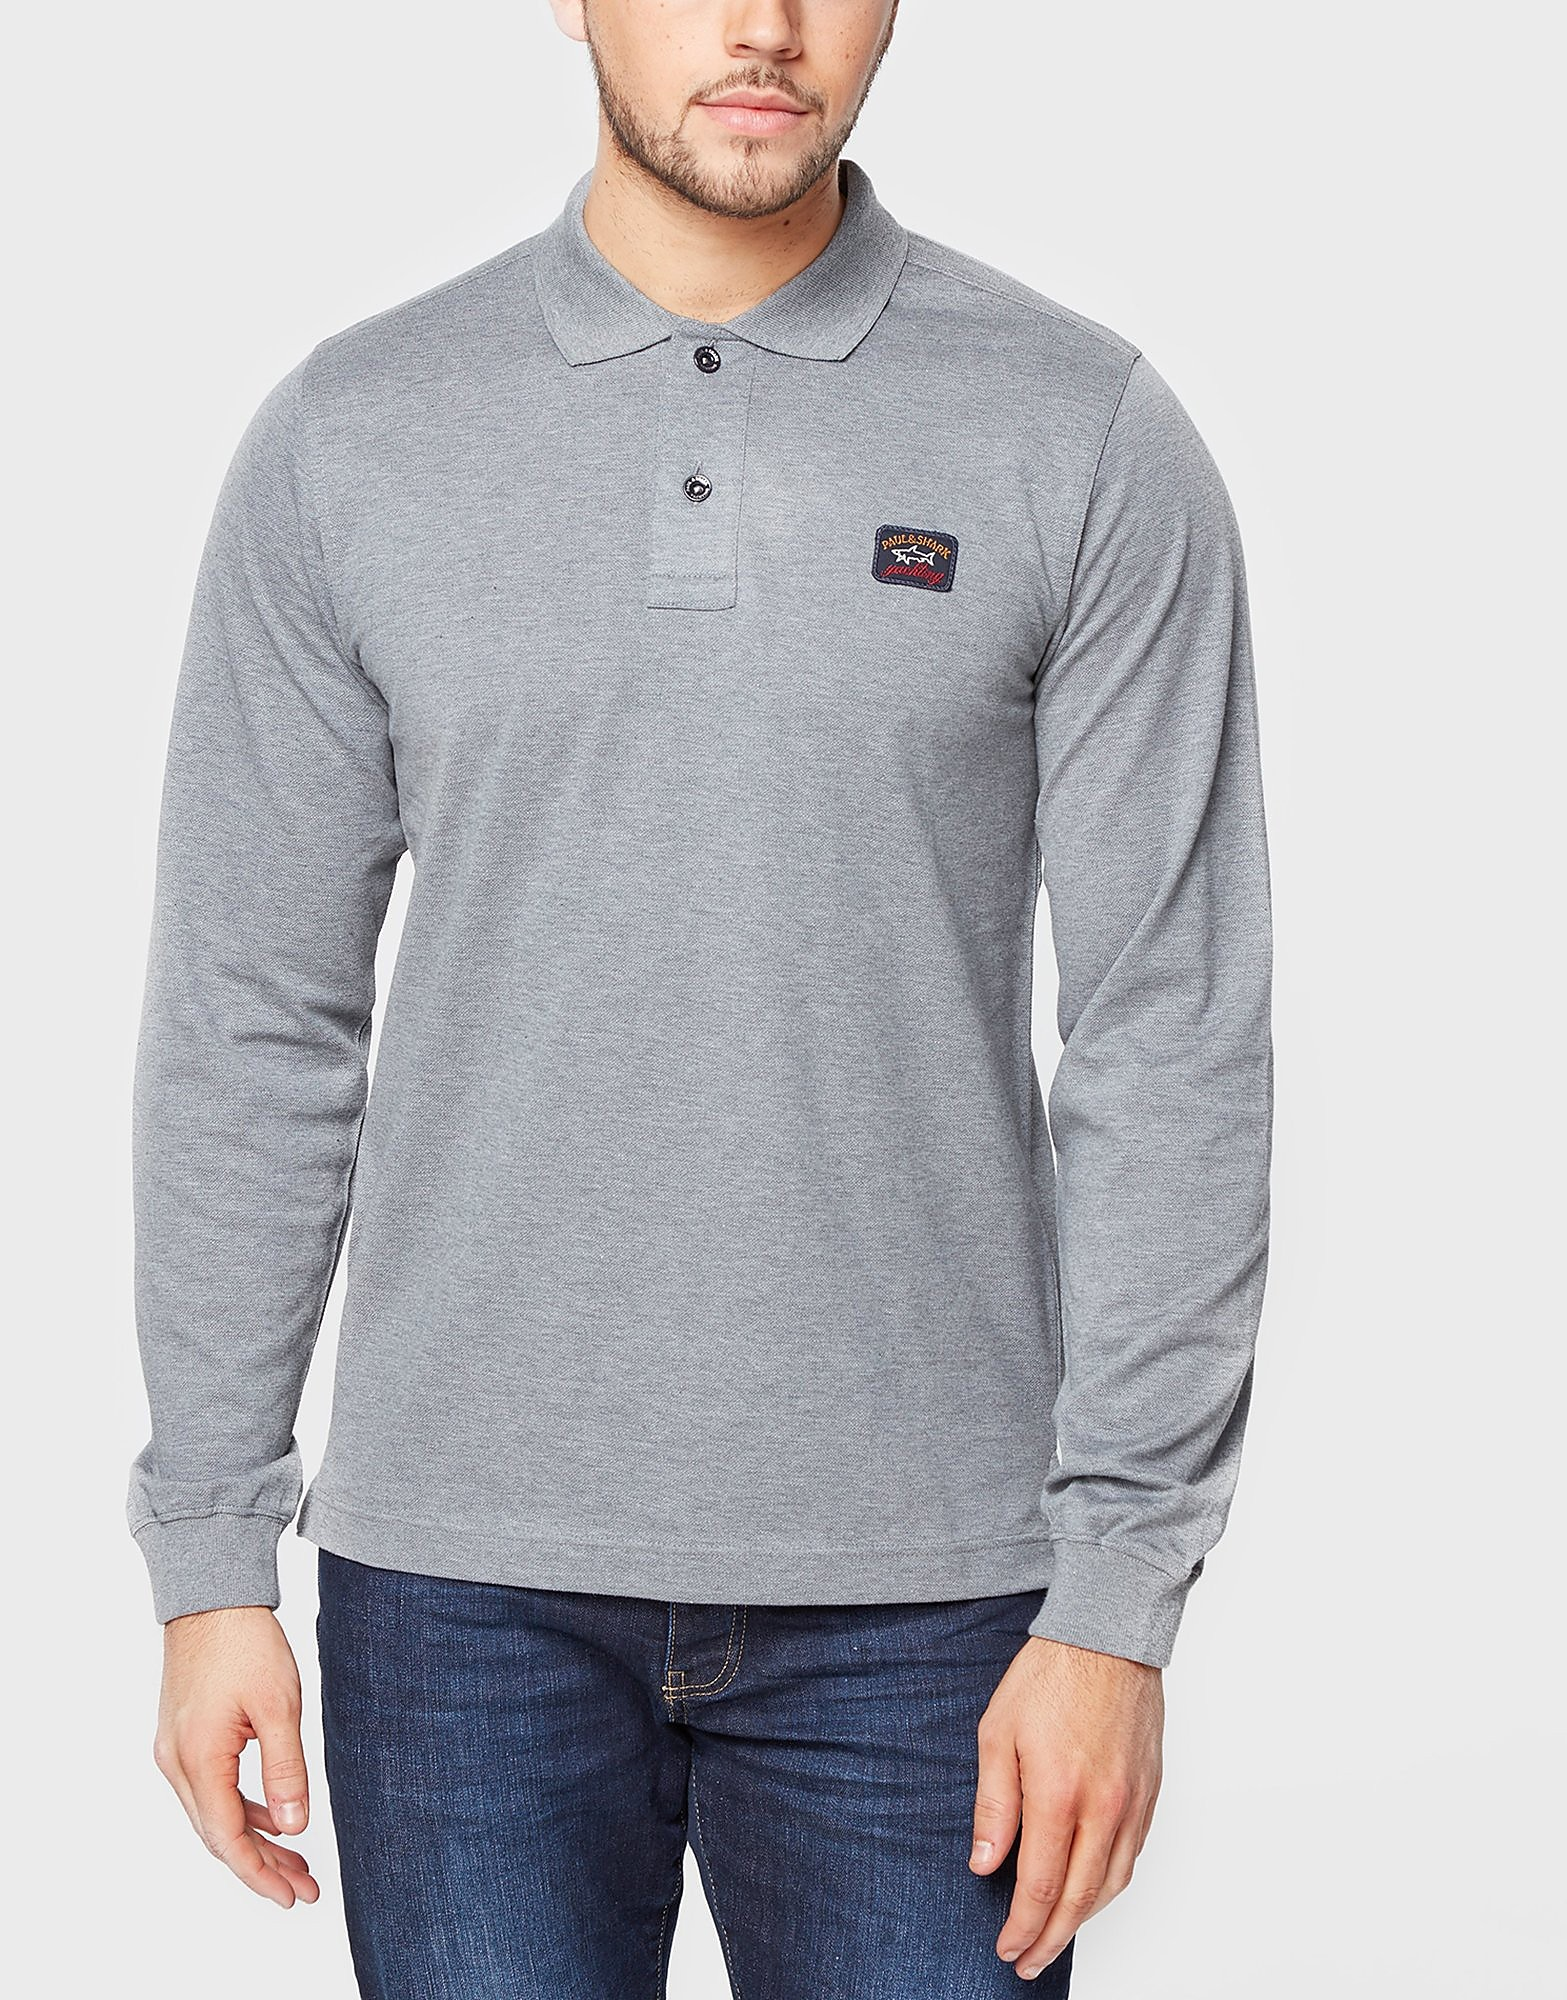 Paul and Shark Long Sleeve Pique Polo Shirt